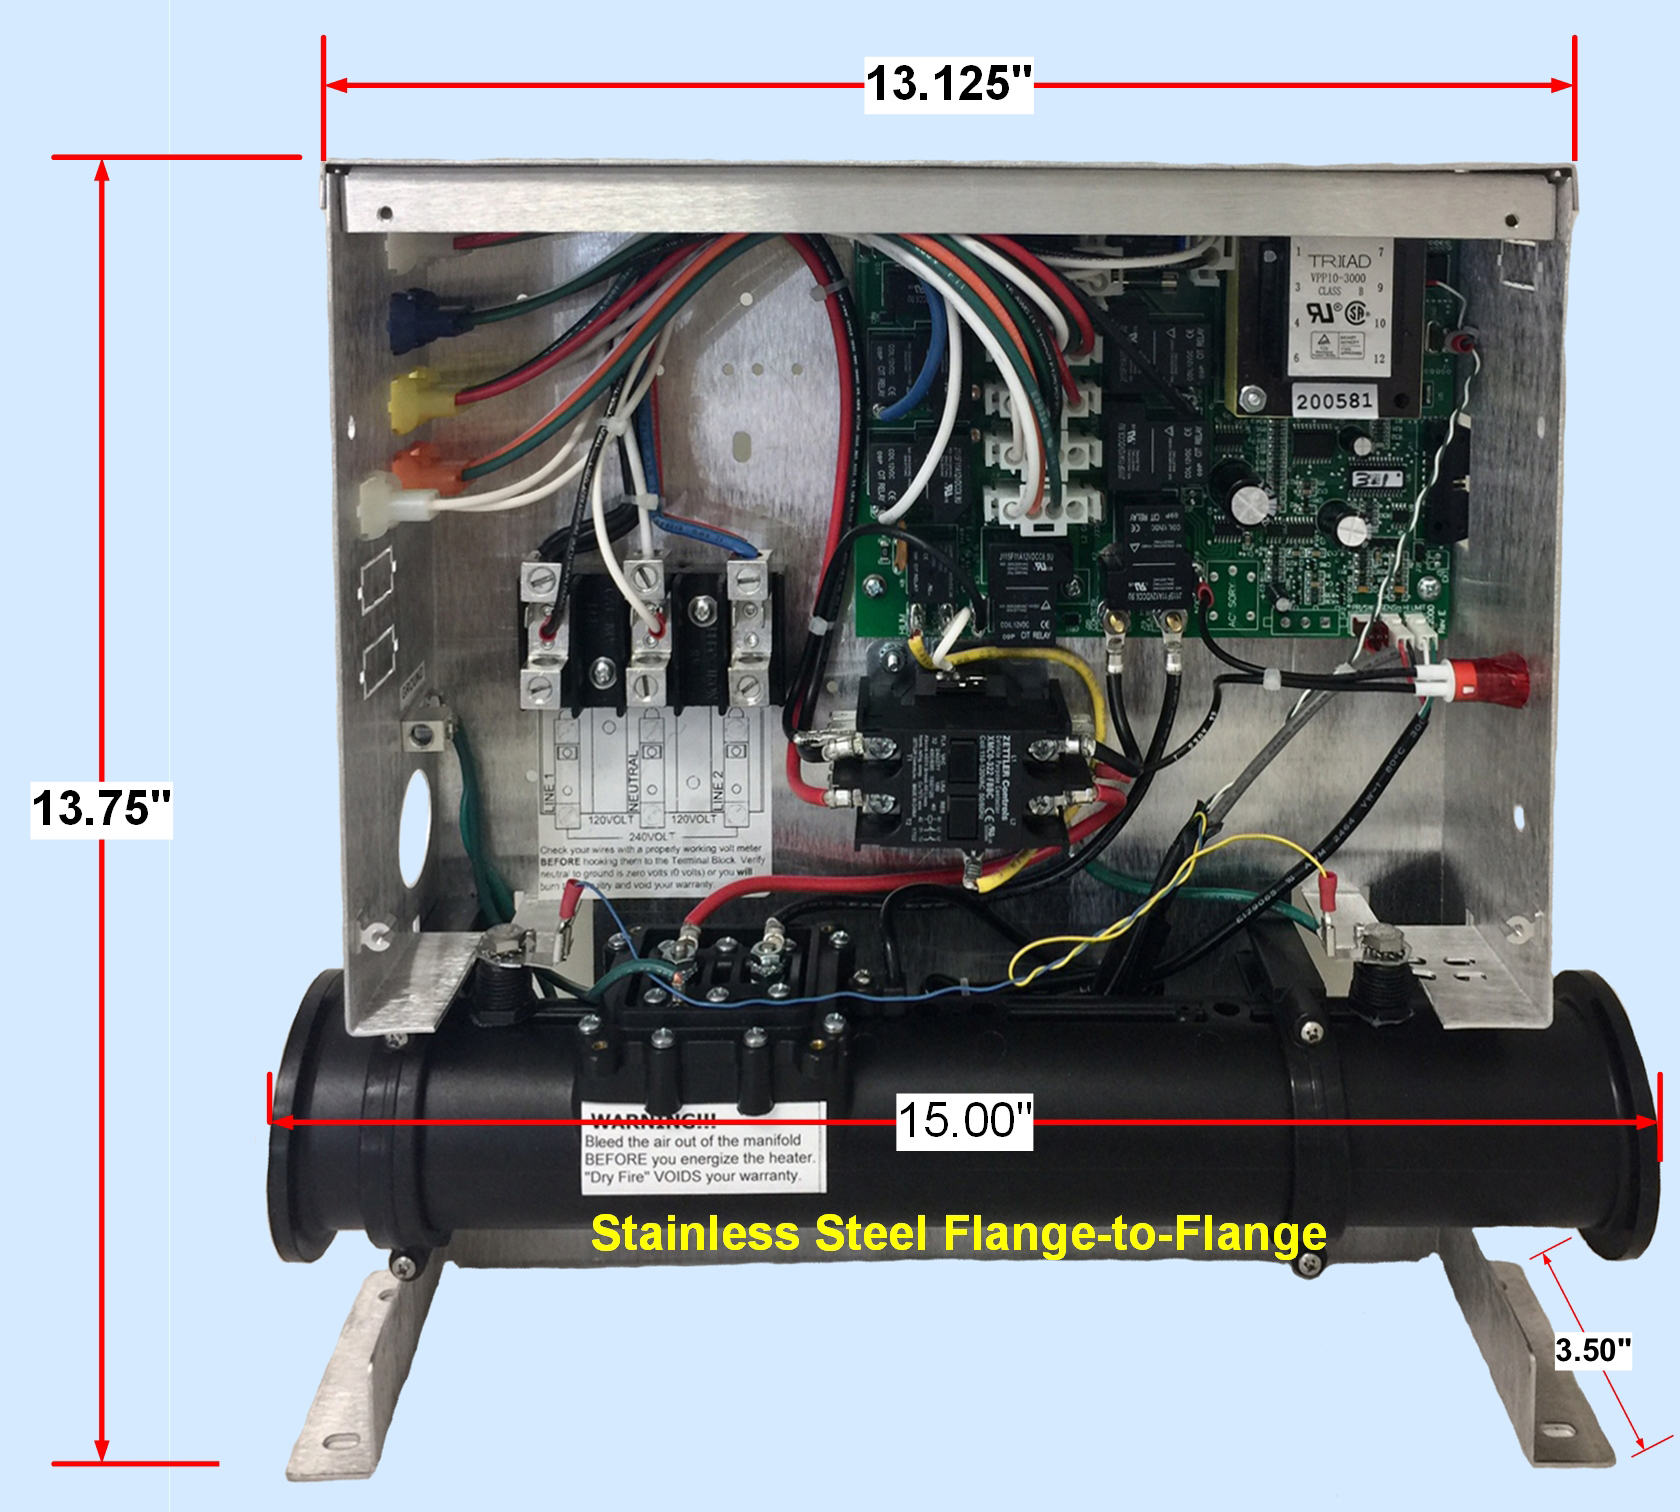 hight resolution of spa circuit board wiring diagram free picture wiring library spa circuit board wiring diagram